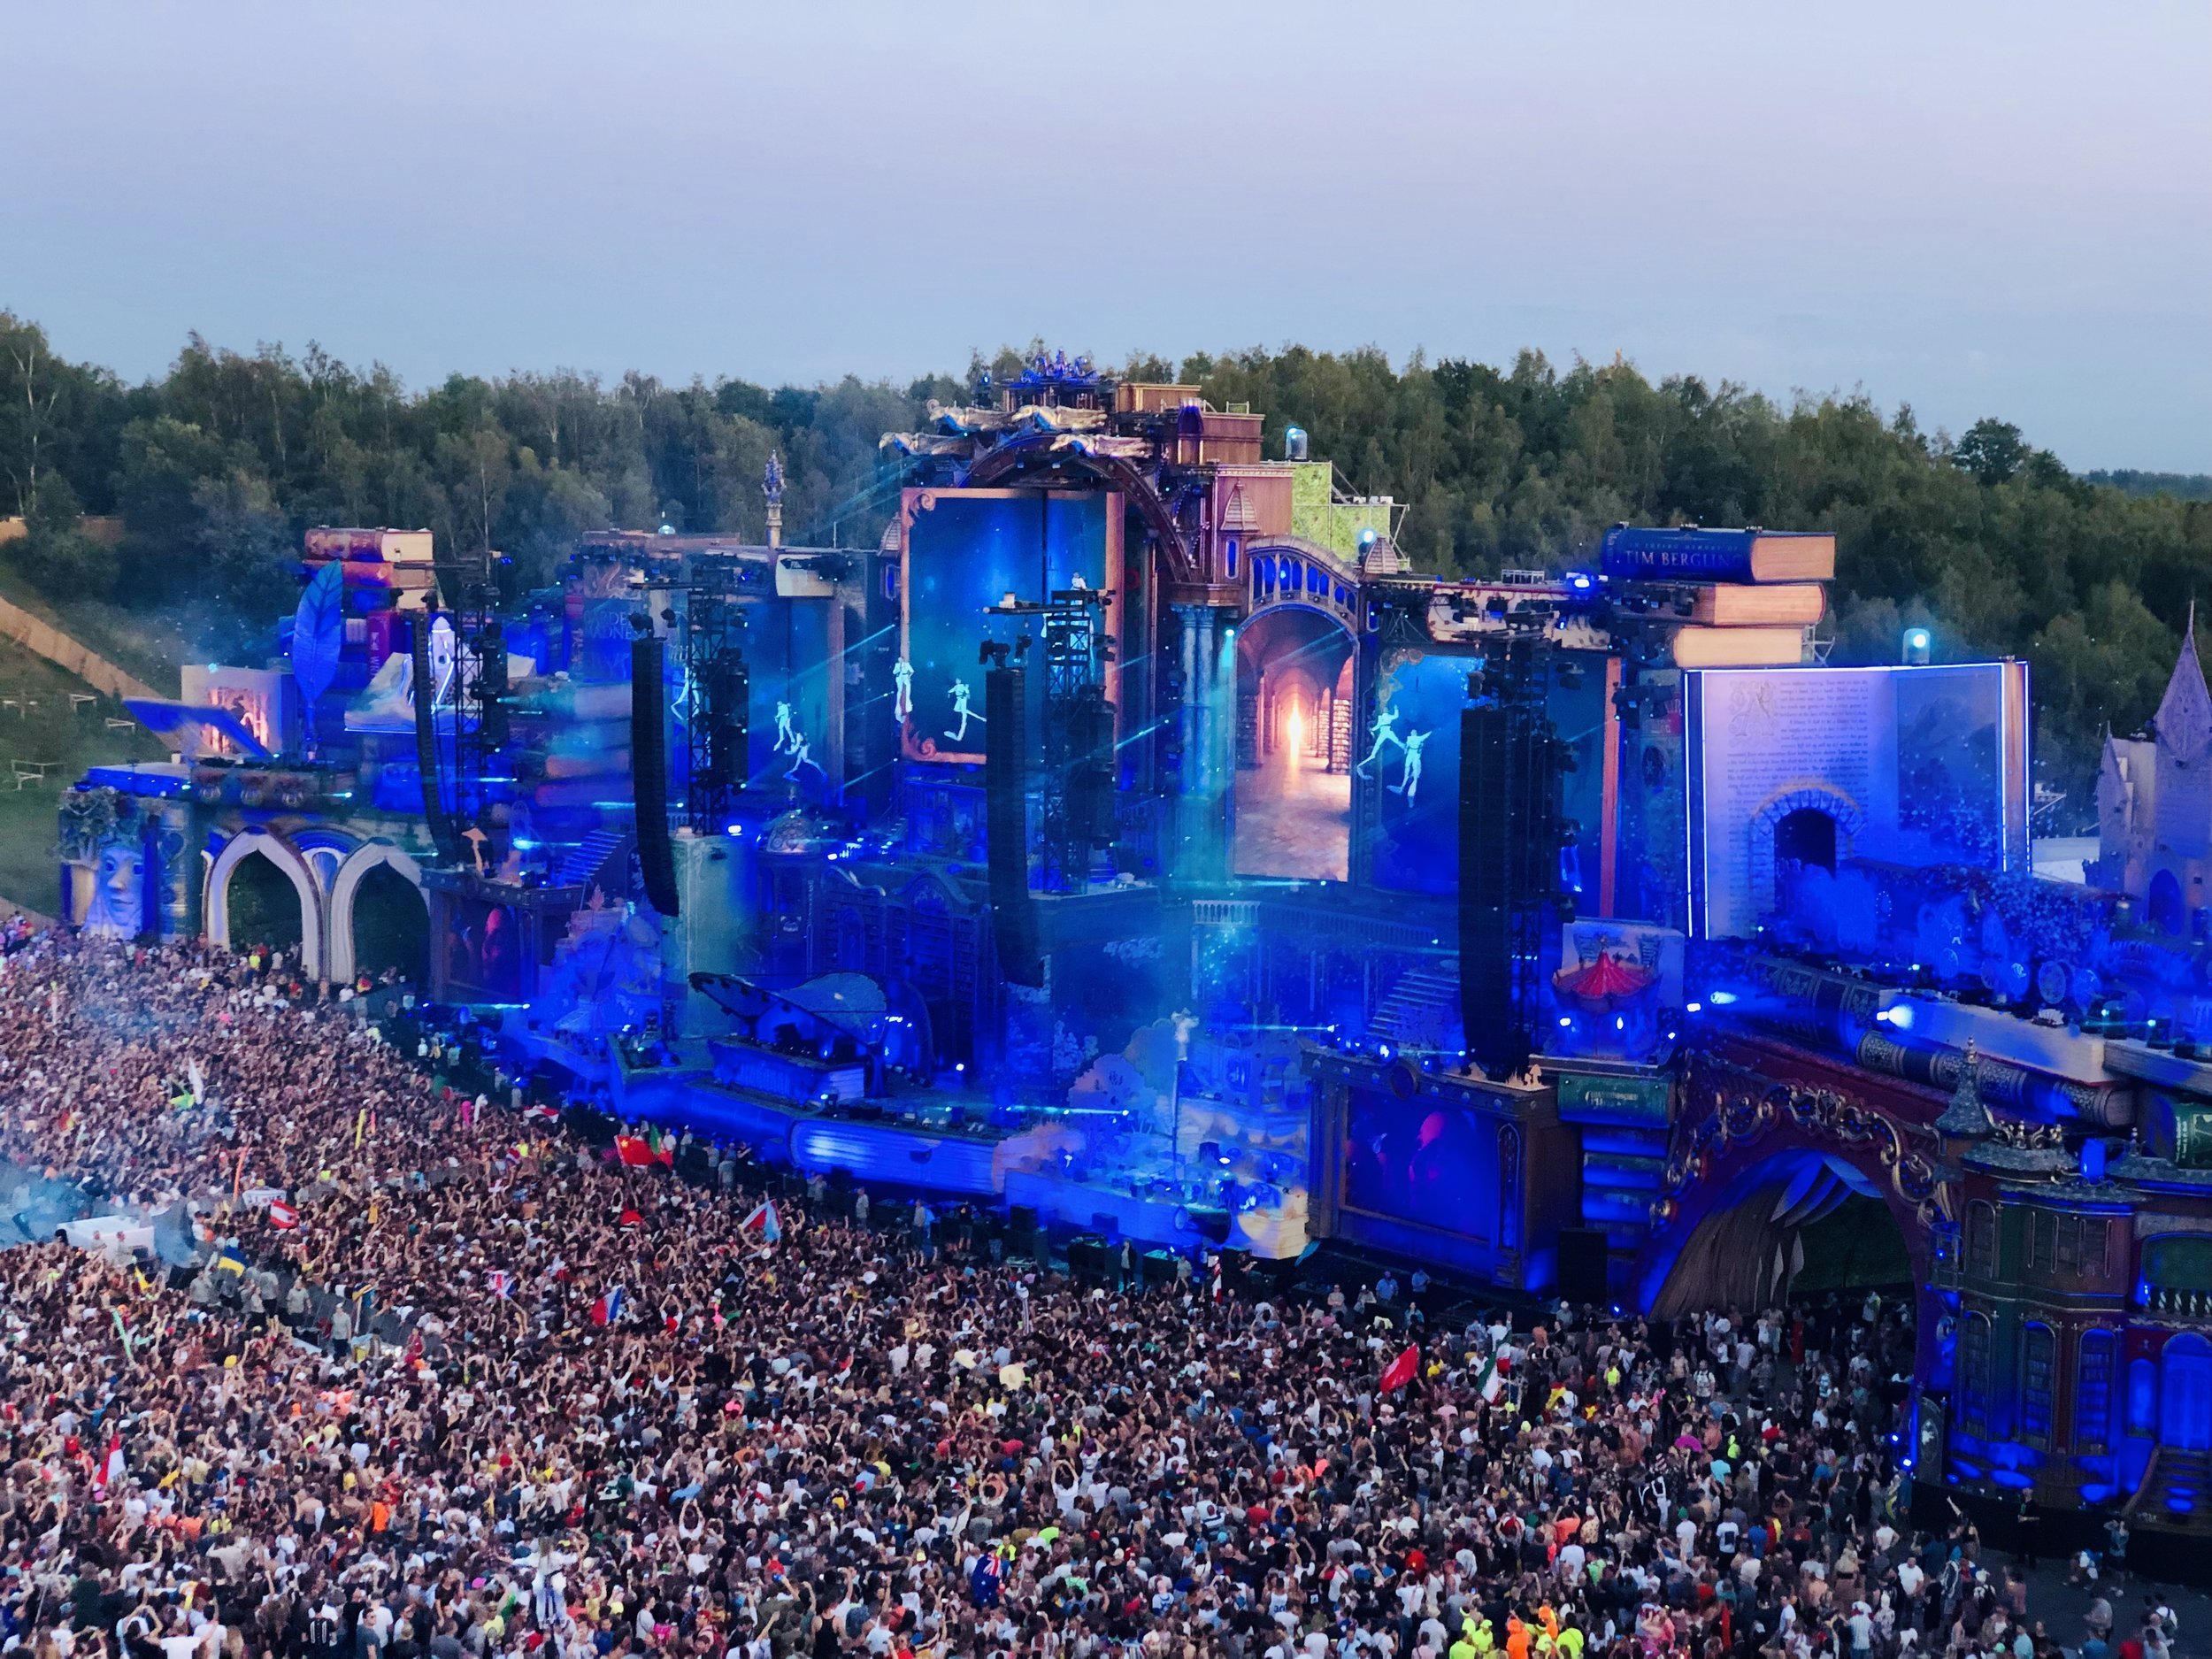 """Tomorrowland - a festival of electronic musical held in Belgium each year. """"The main stage was a library, set up with books with a strong storyline running through the festival'"""